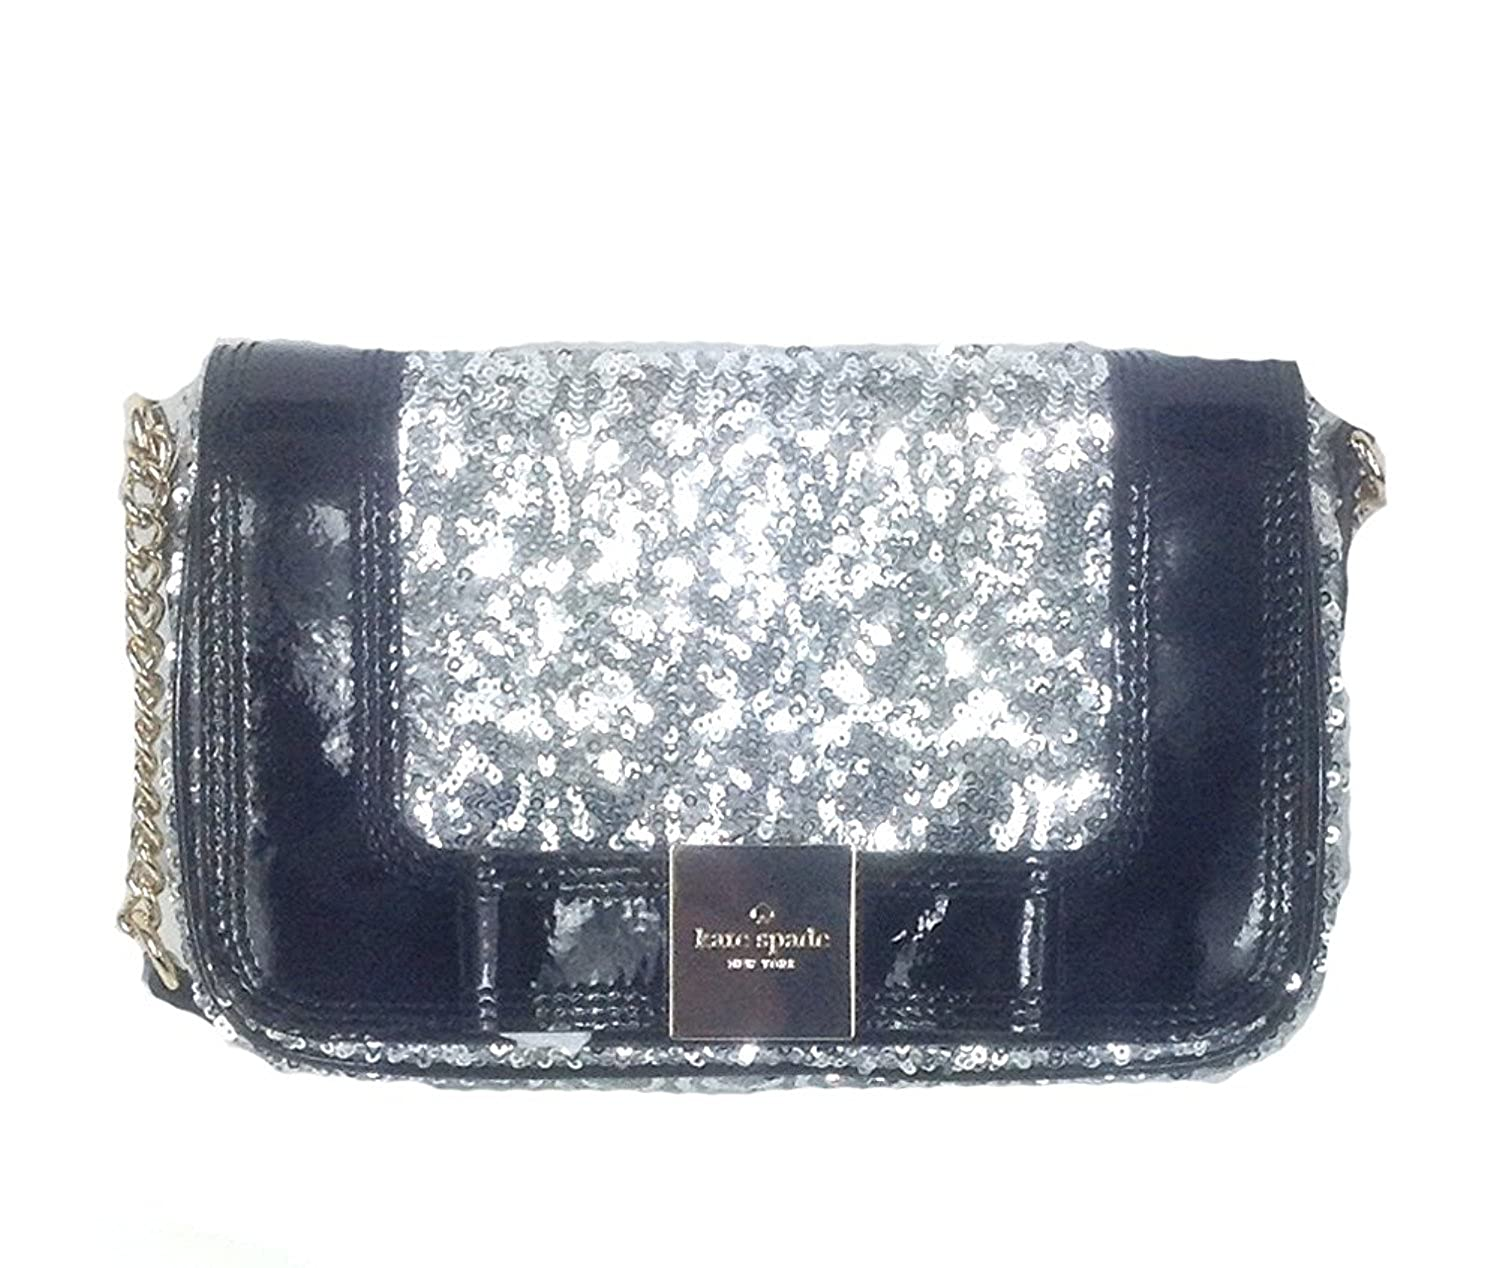 Kate Spade New York Primrose Hill Little Kaelin Sequin Evening Bag, Silver WKRU2268